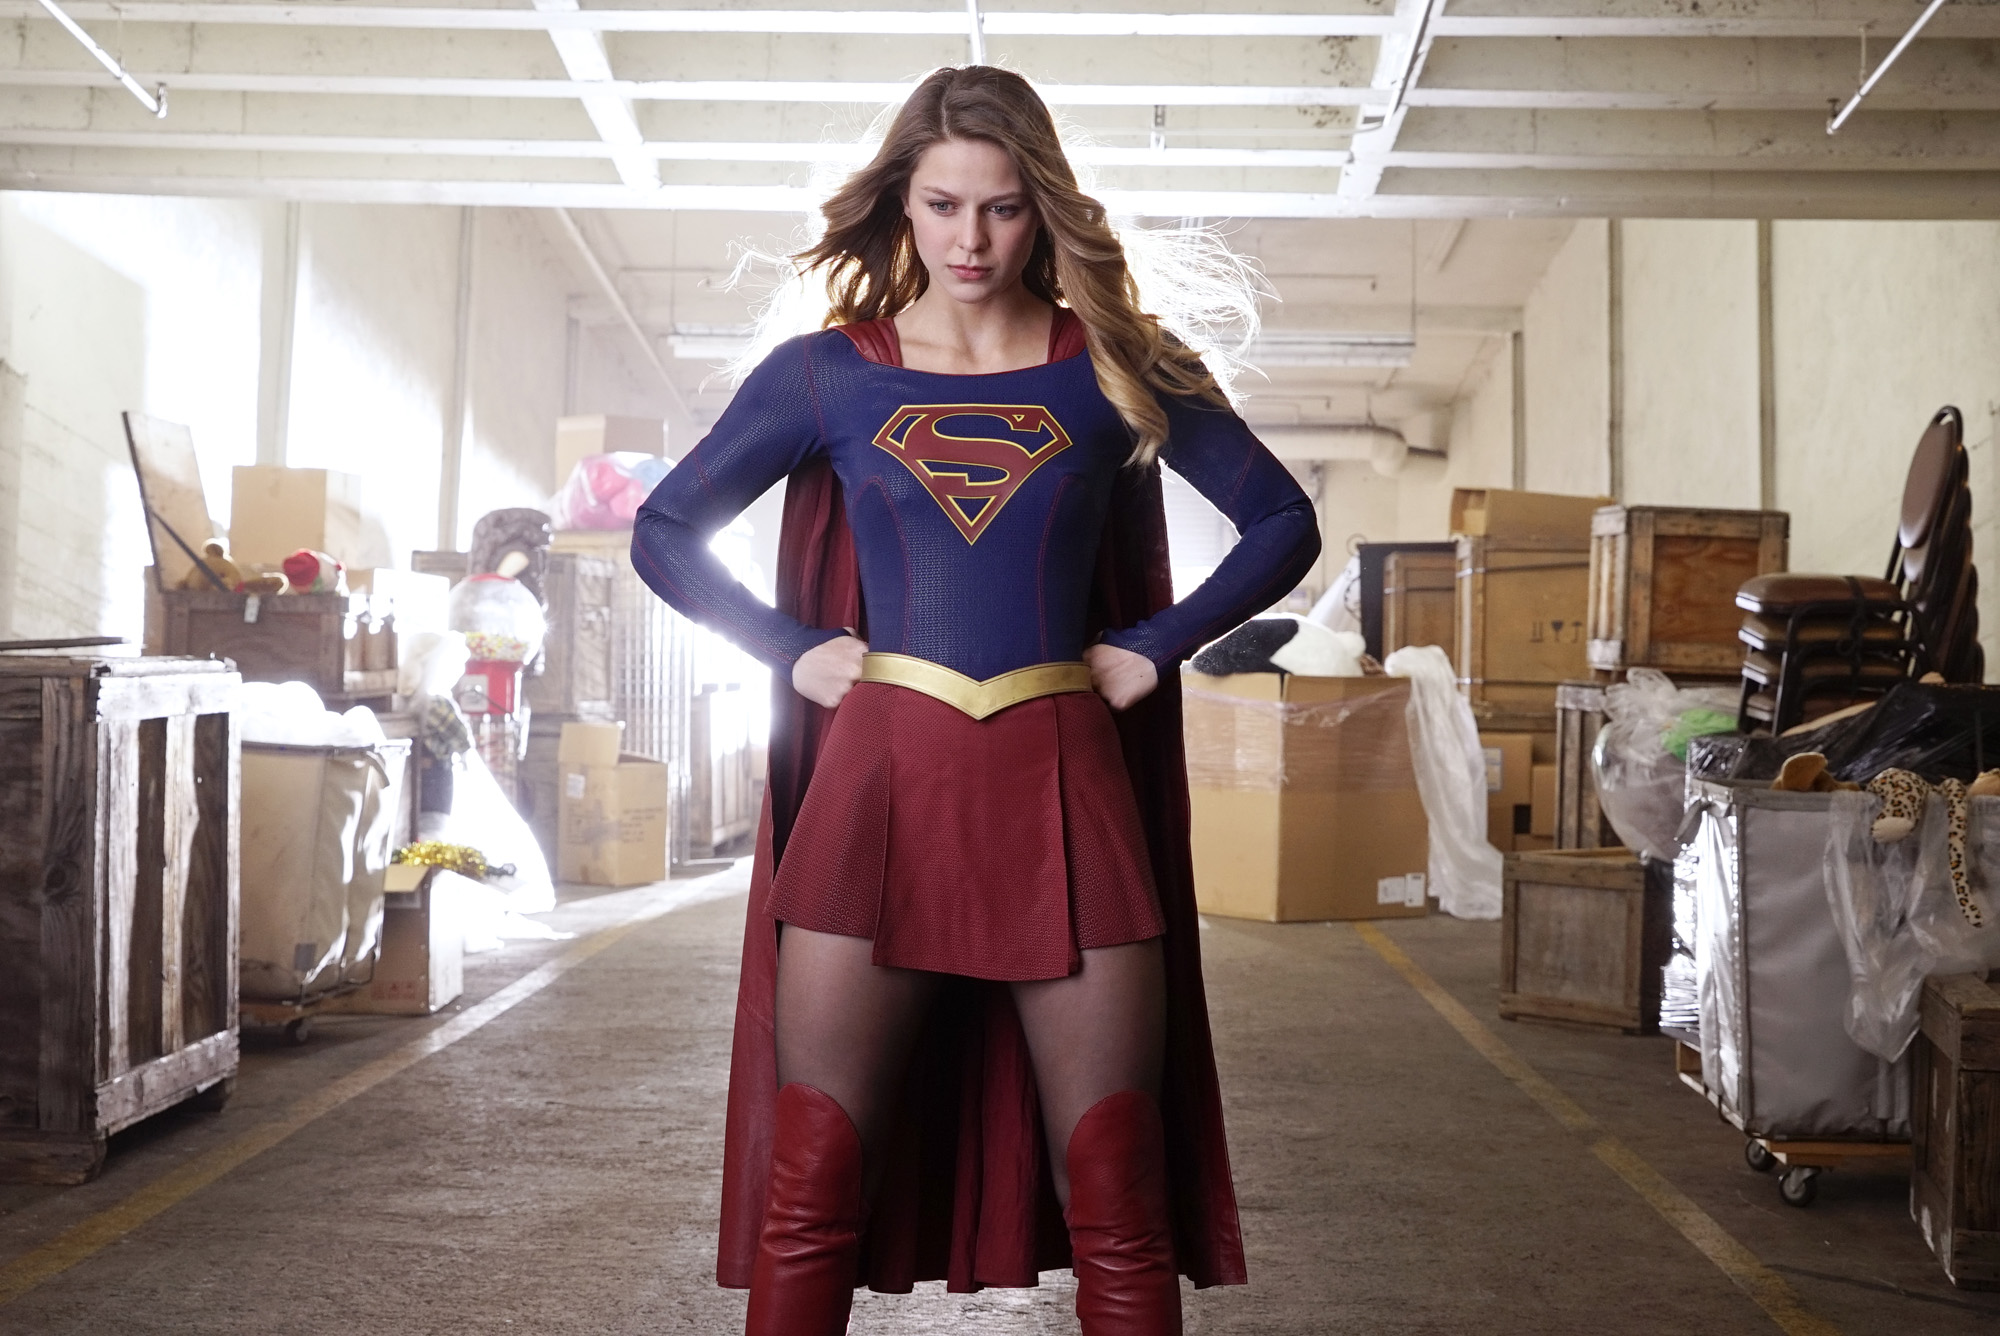 Elseworlds Supergirl